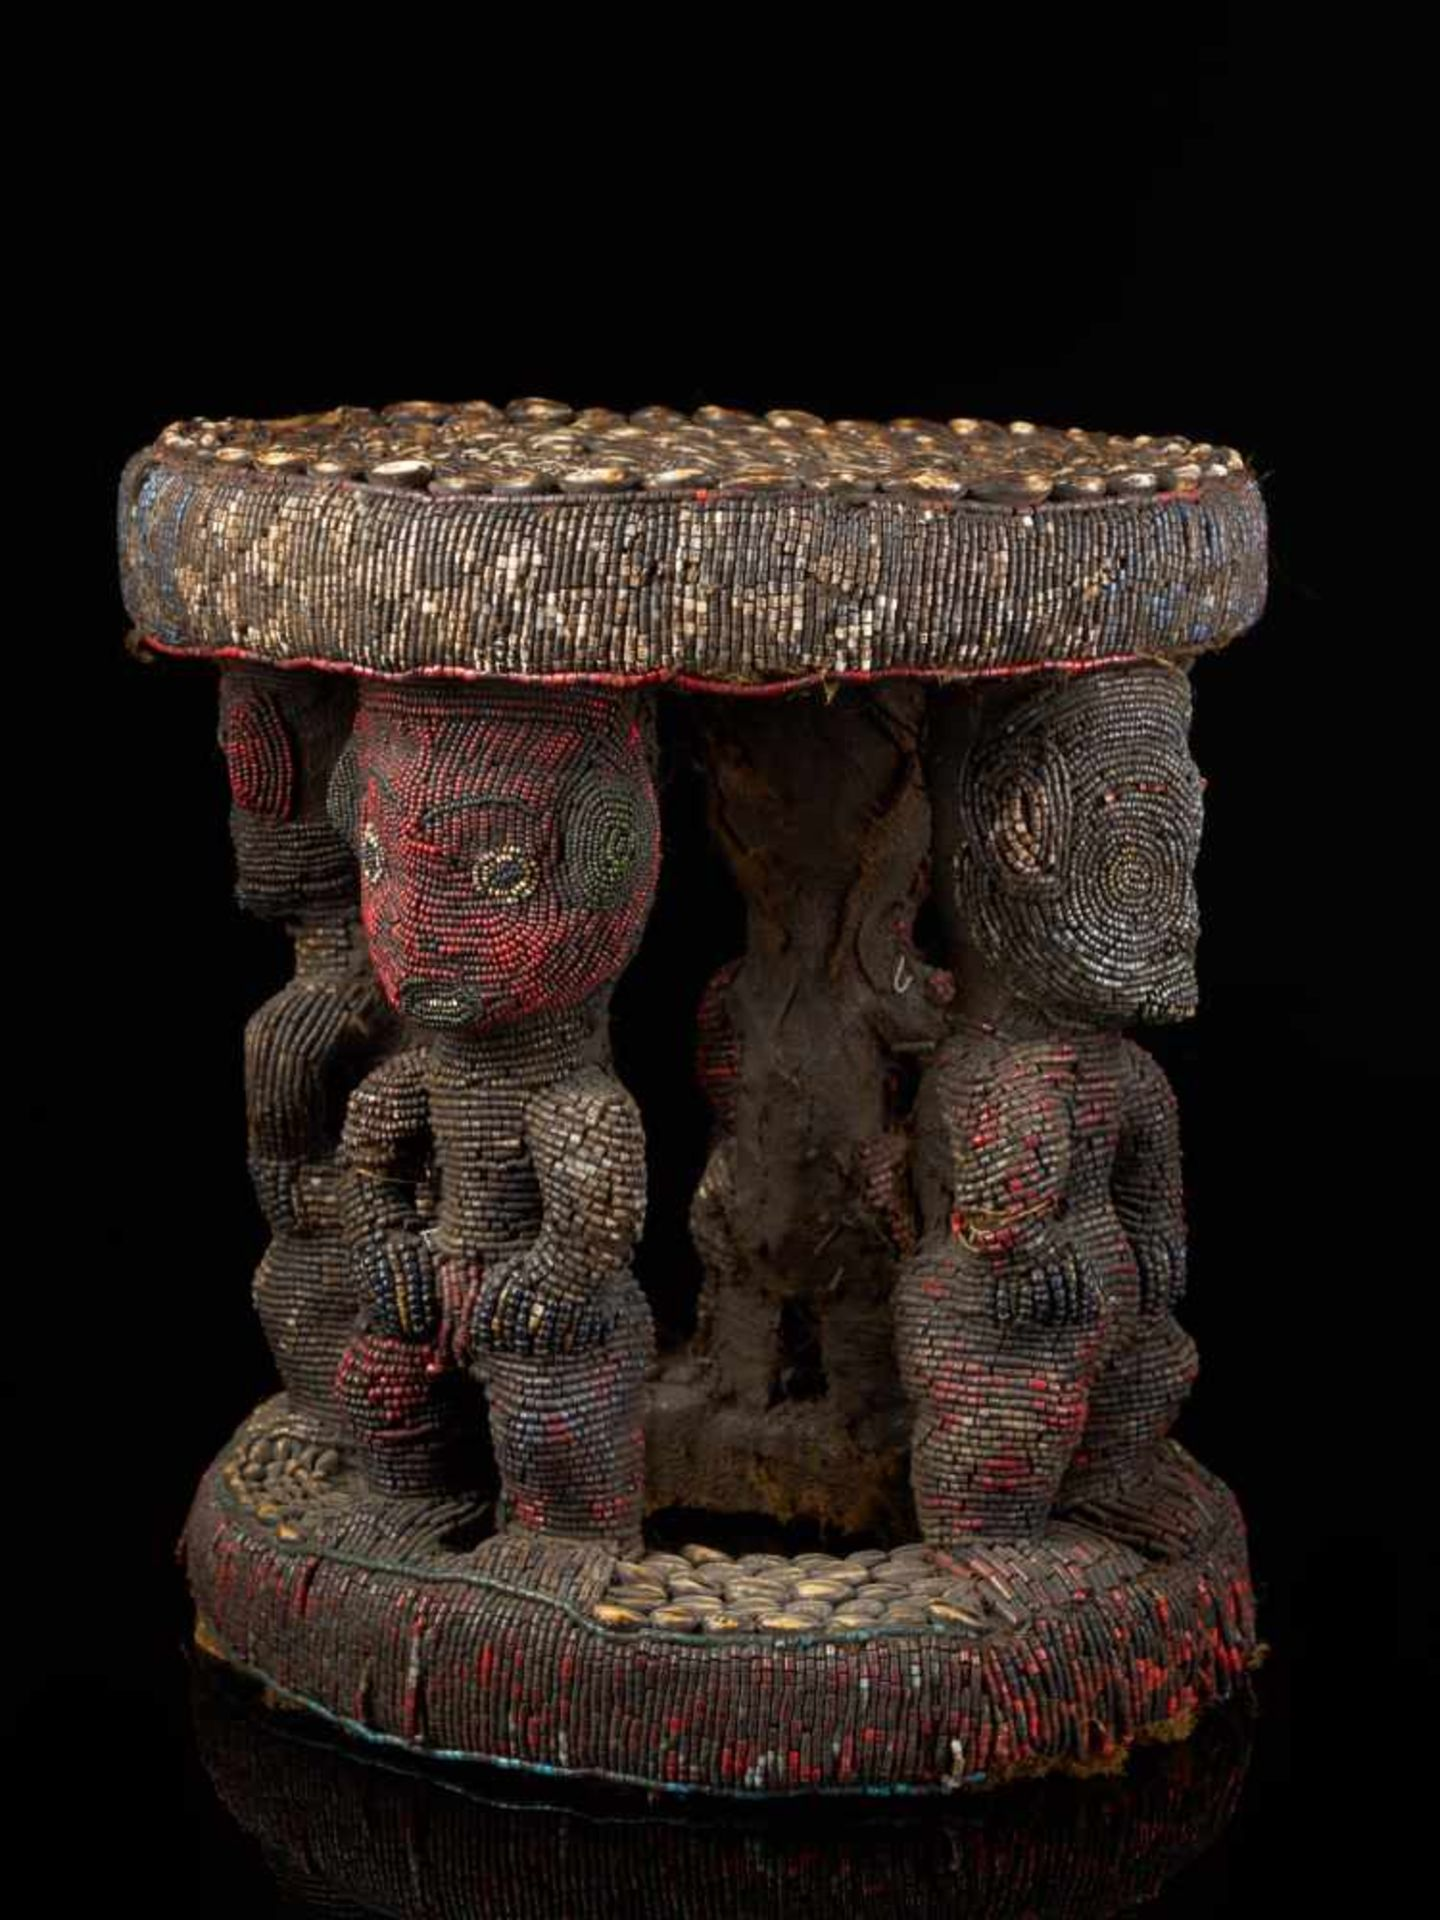 Beaded Royal Stool Supported By Four Figures - Tribal ArtThis stunning stool has a round base and